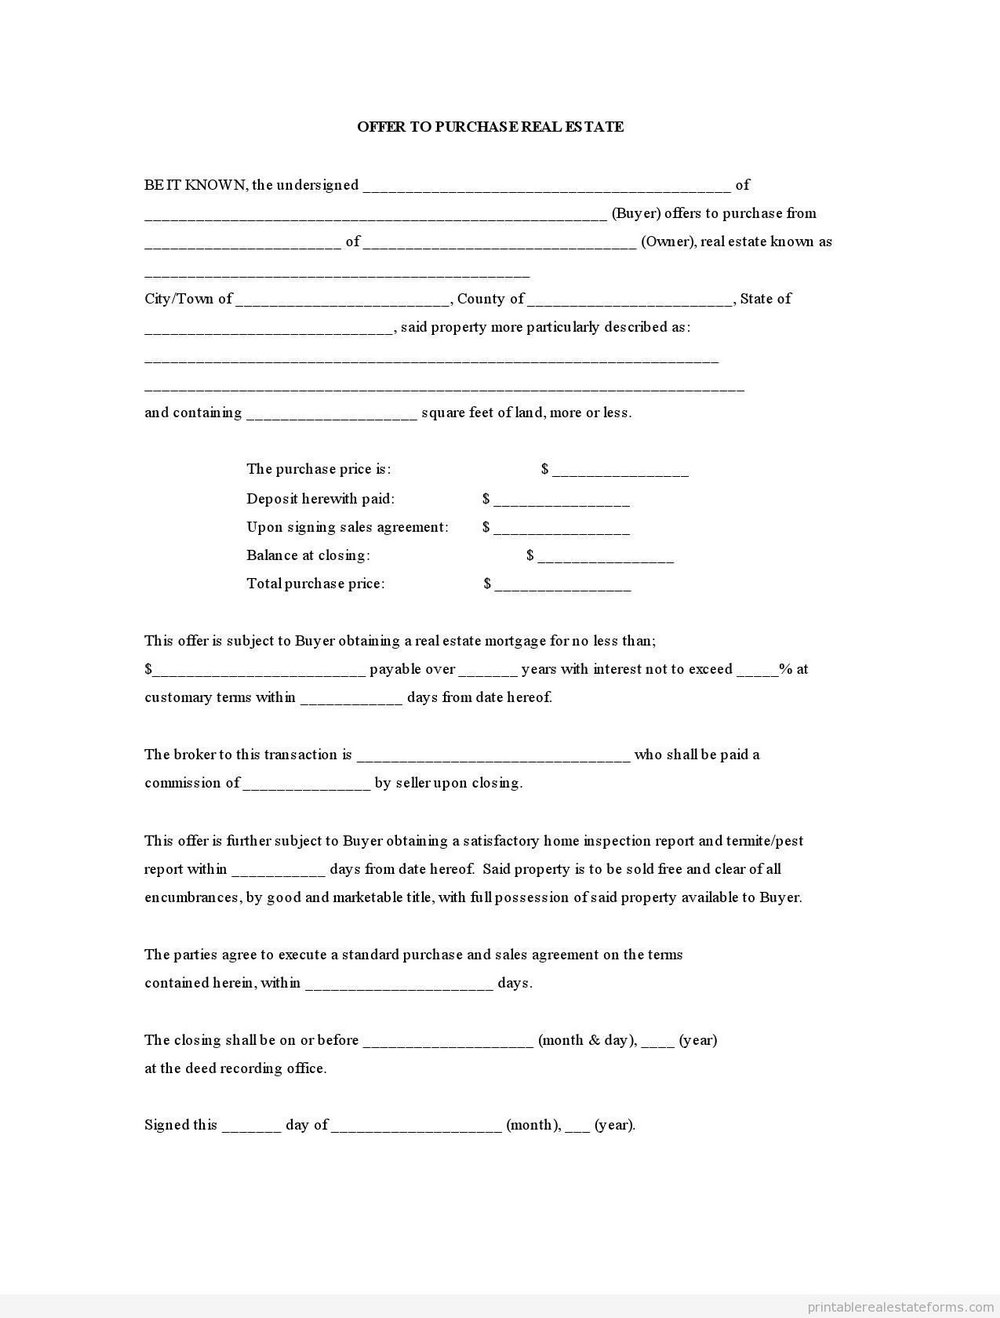 Counter Affidavit Sample Form